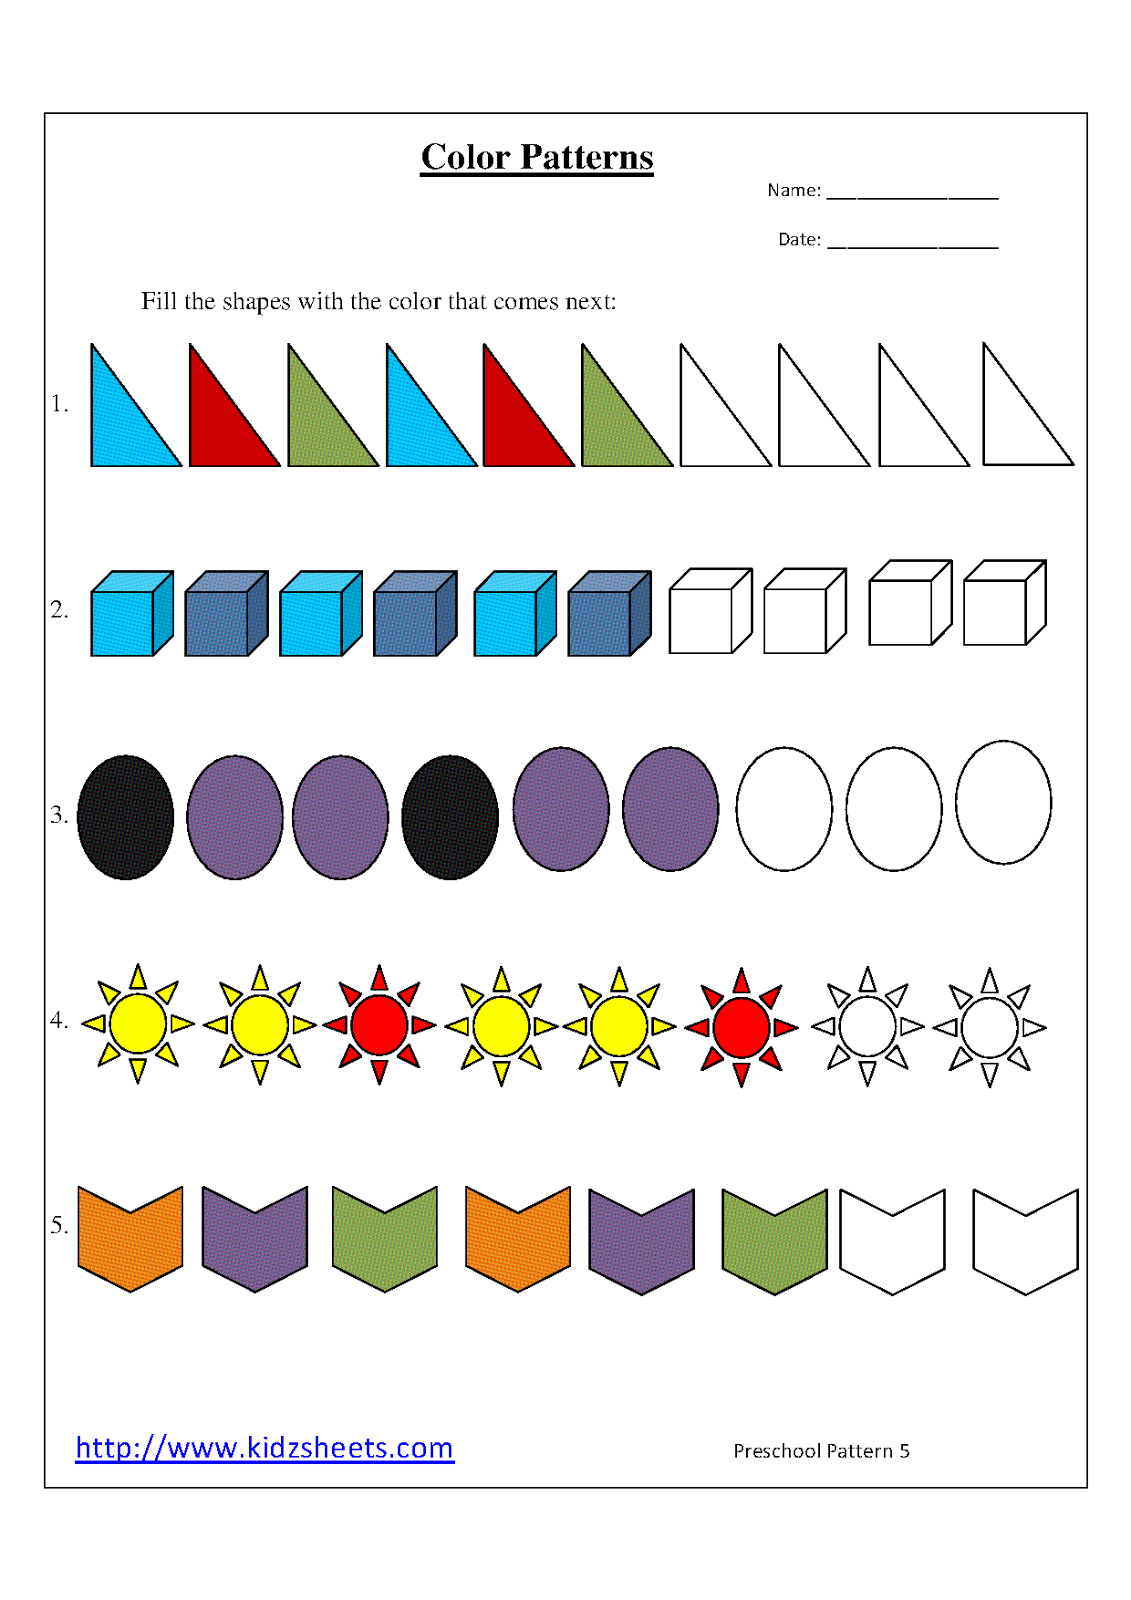 math worksheet : preschool color pattern worksheets  worksheets : Free Pattern Worksheets For Kindergarten